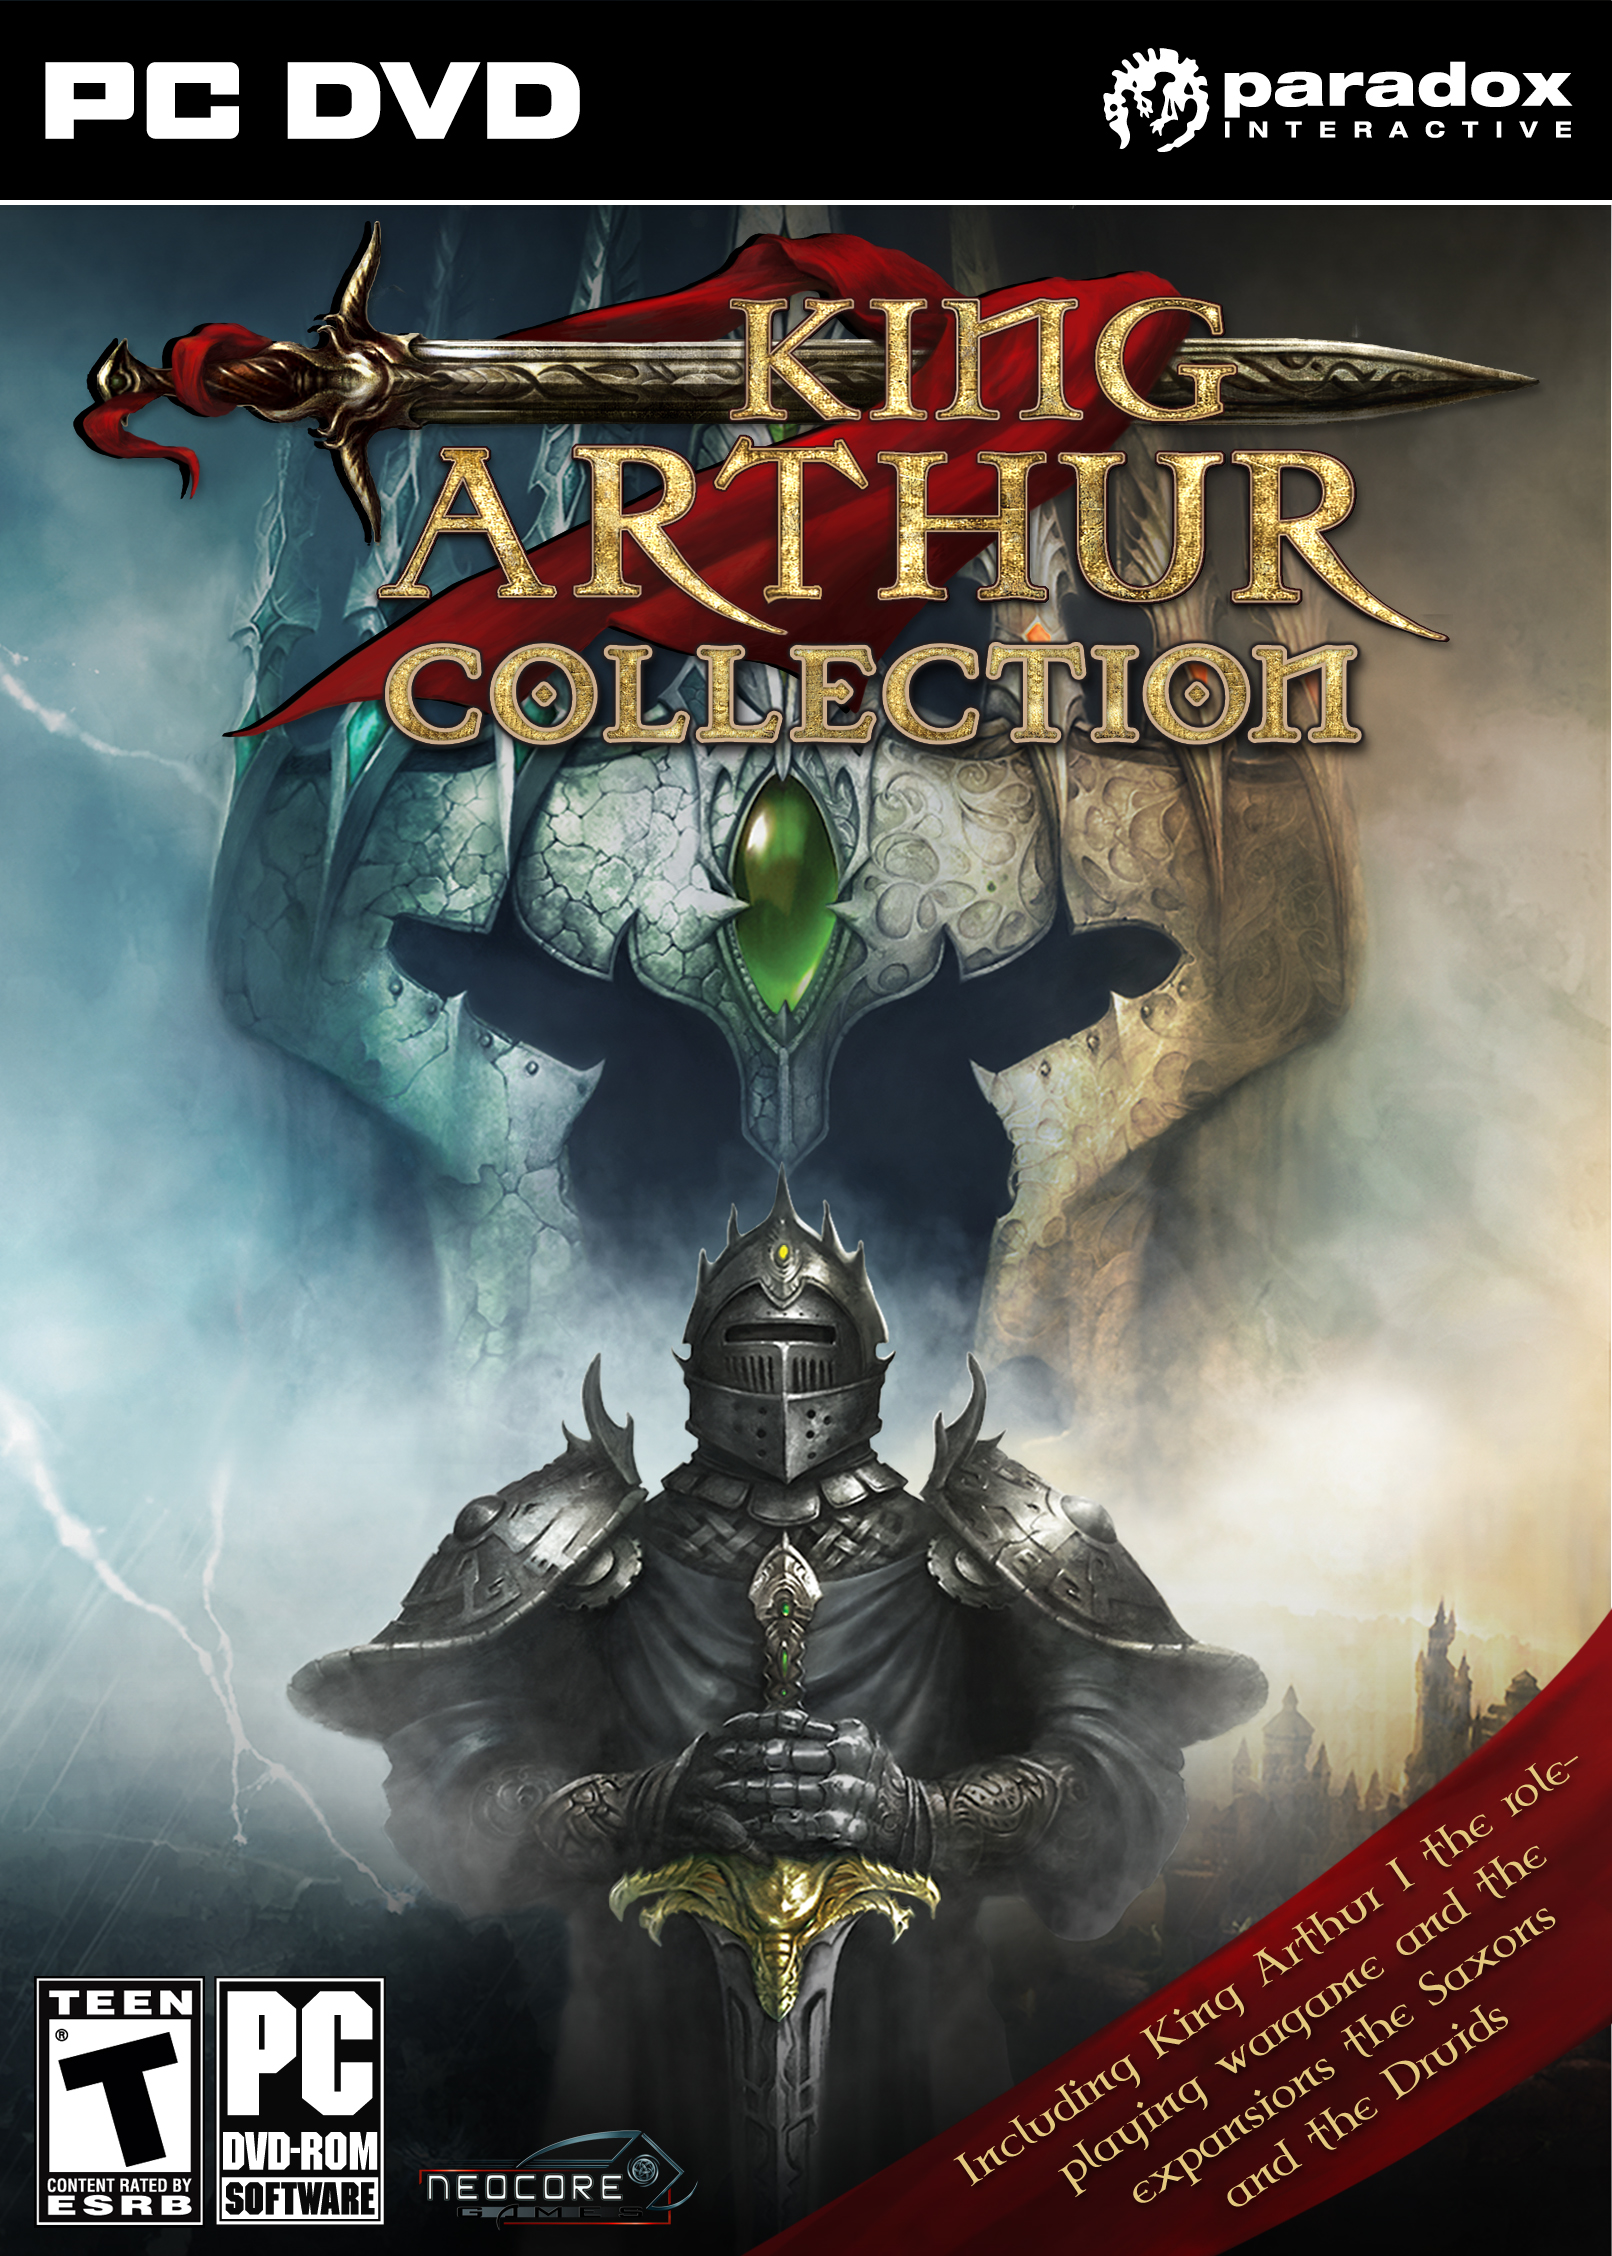 King Arthur Collection Deutsche  Videos, Stimmen / Sprachausgabe Cover